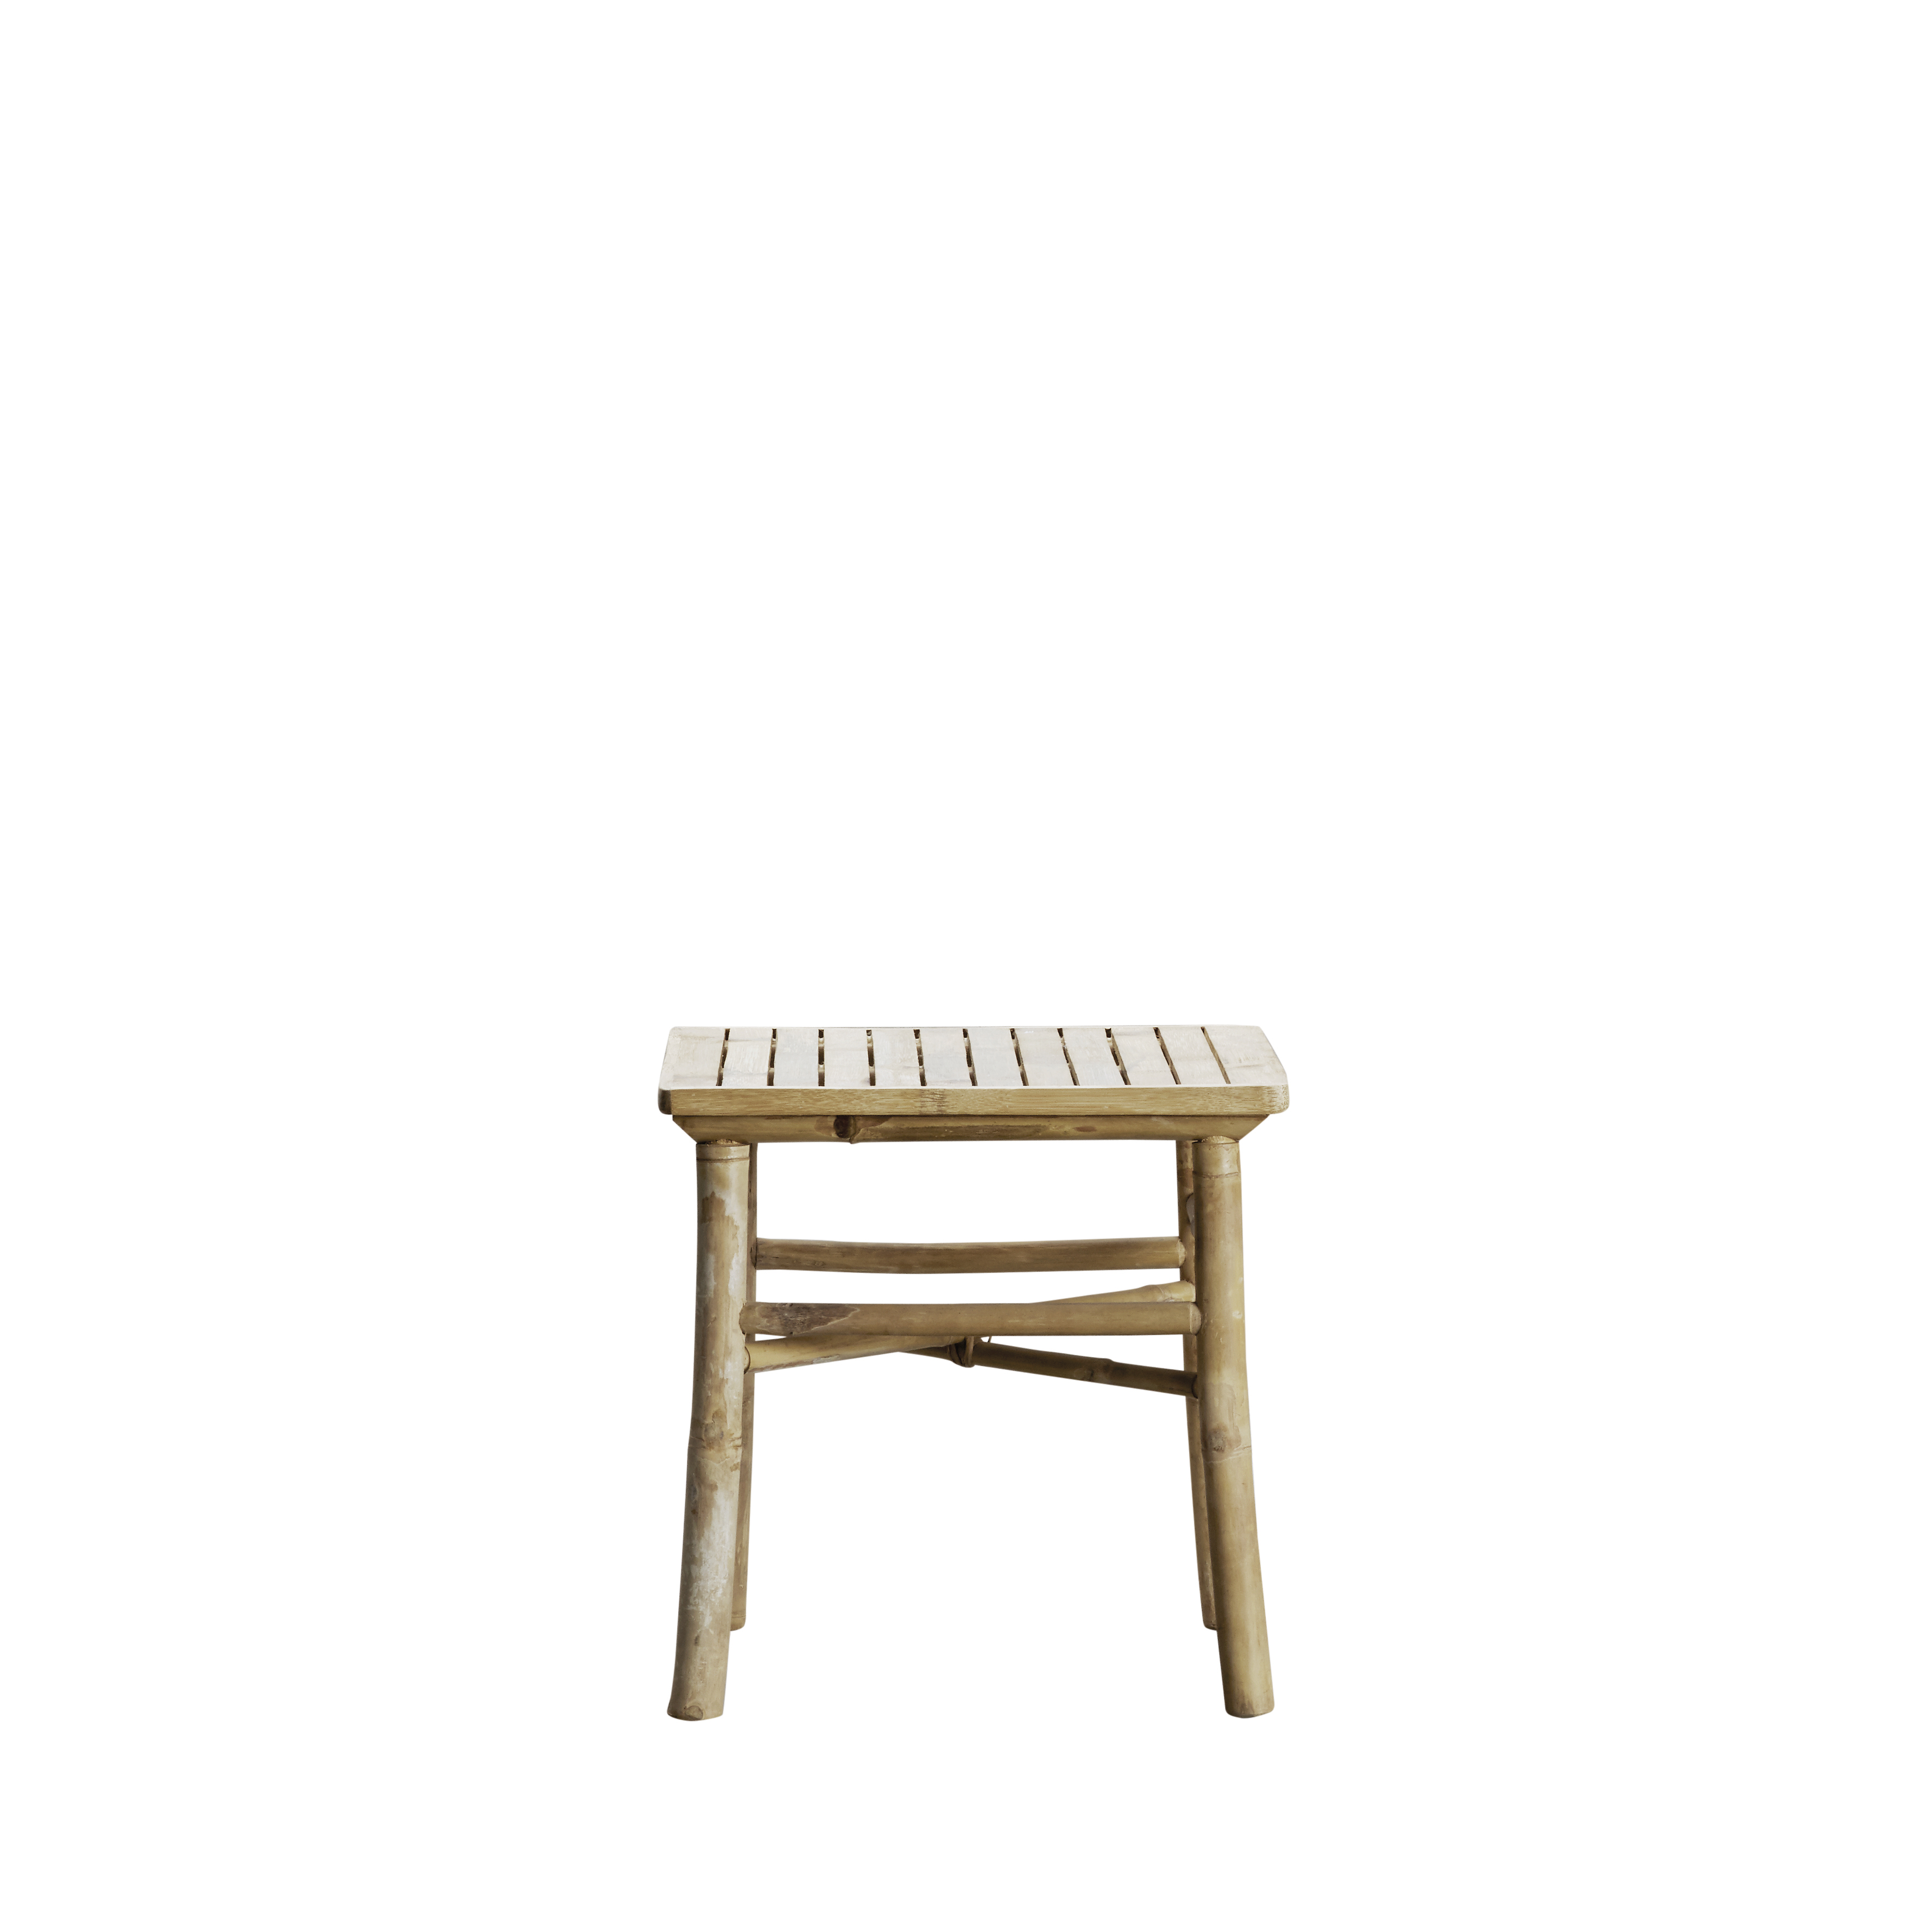 Small bamboo table for both indoor and outdoor use